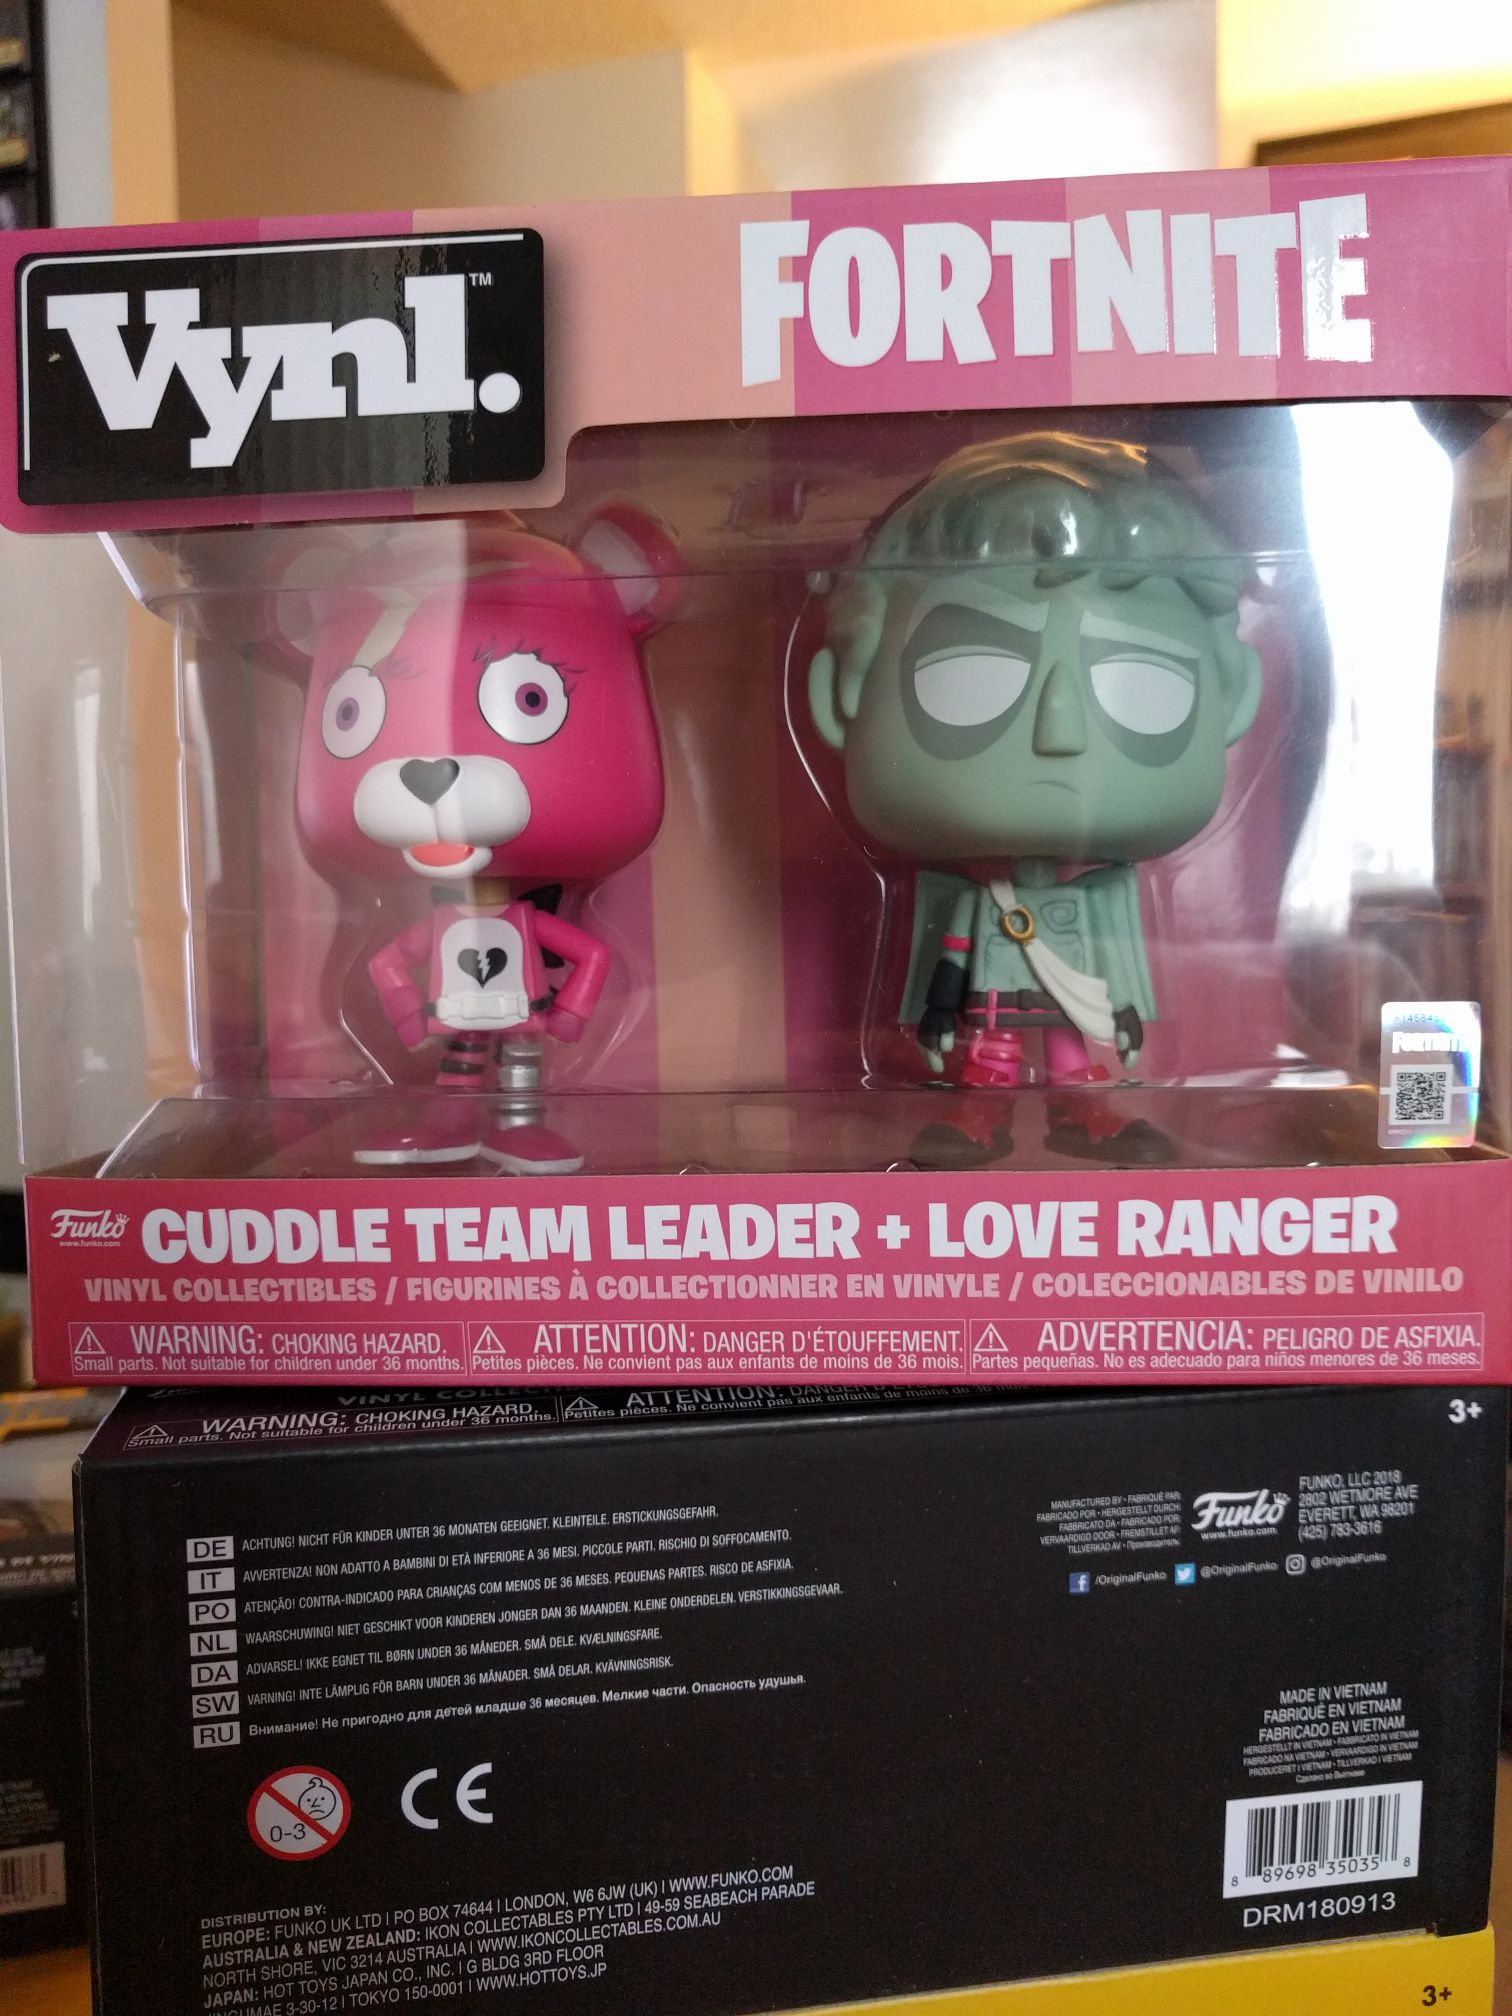 Cuddle Team Leader + Love Ranger Funko - Vynl front image (front cover)